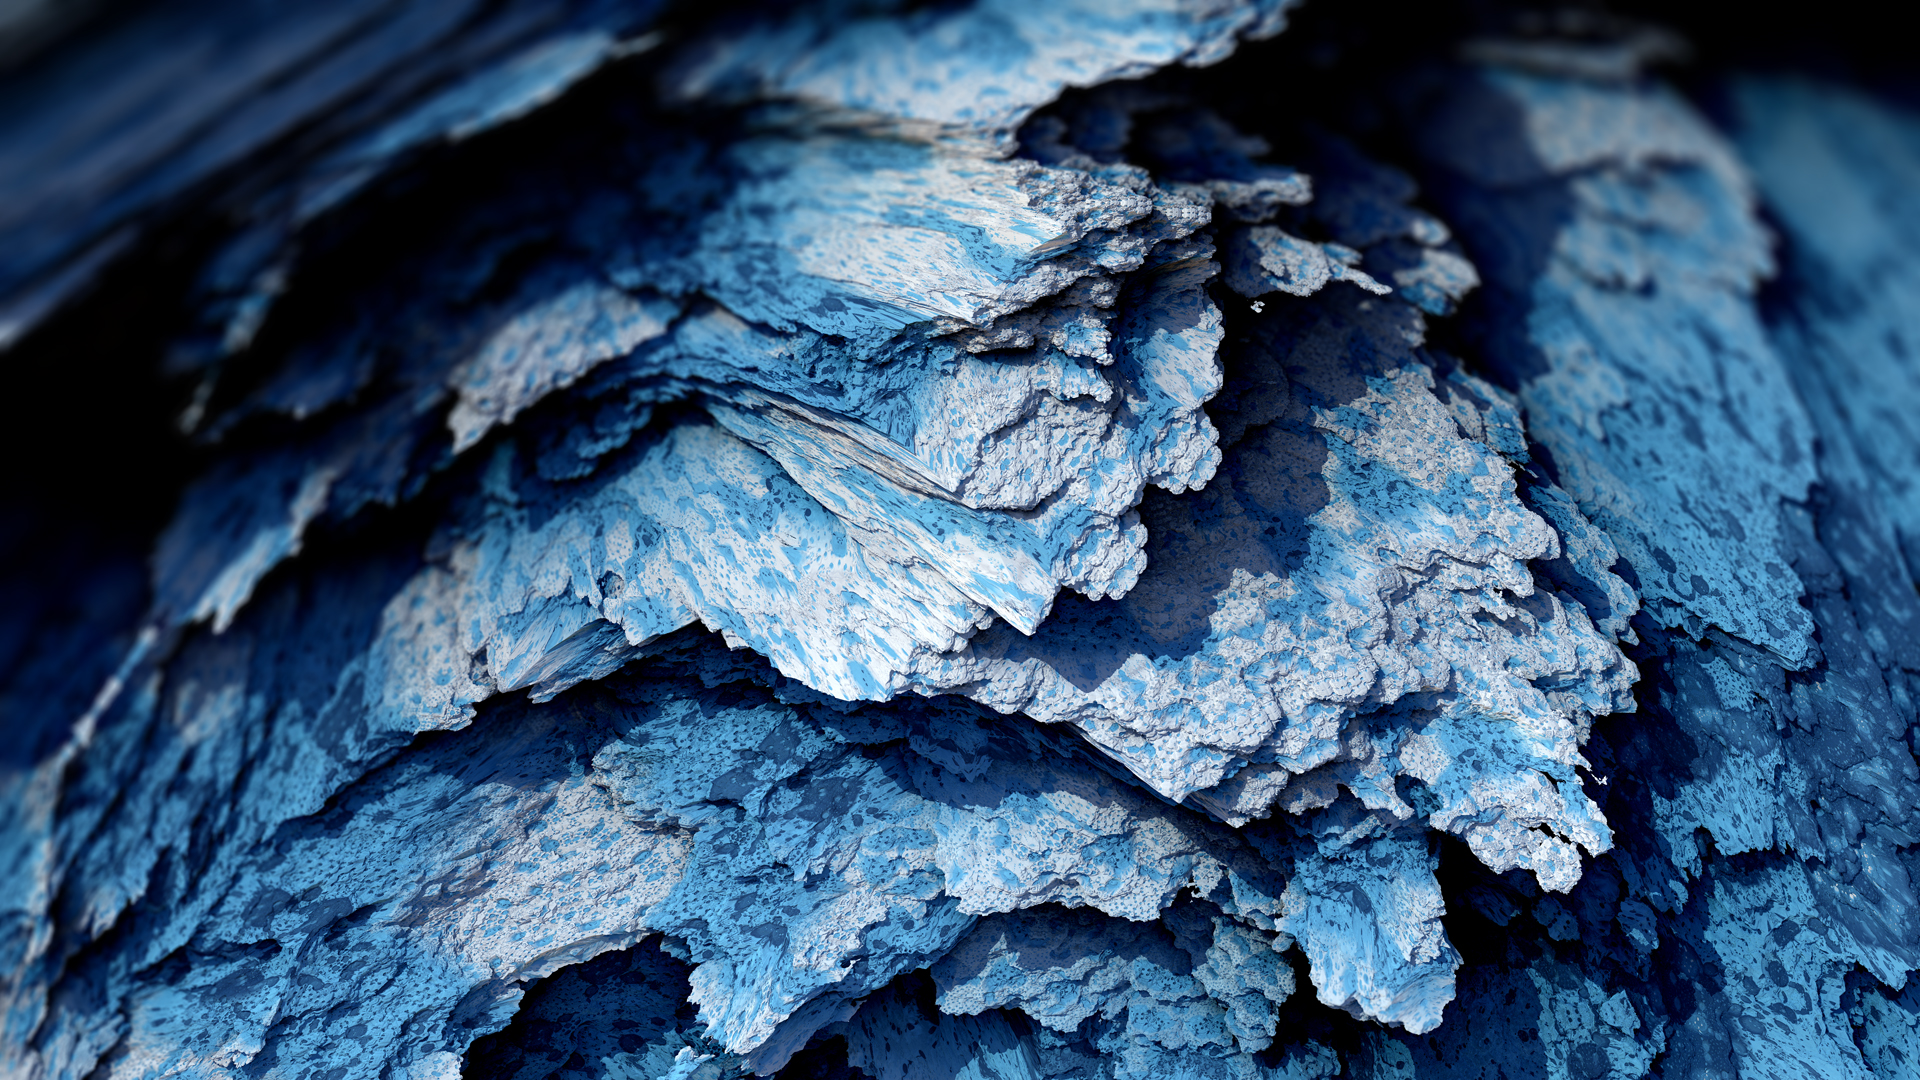 Android 3d Live Wallpaper Maker Download Minerals Wallpapers Gallery